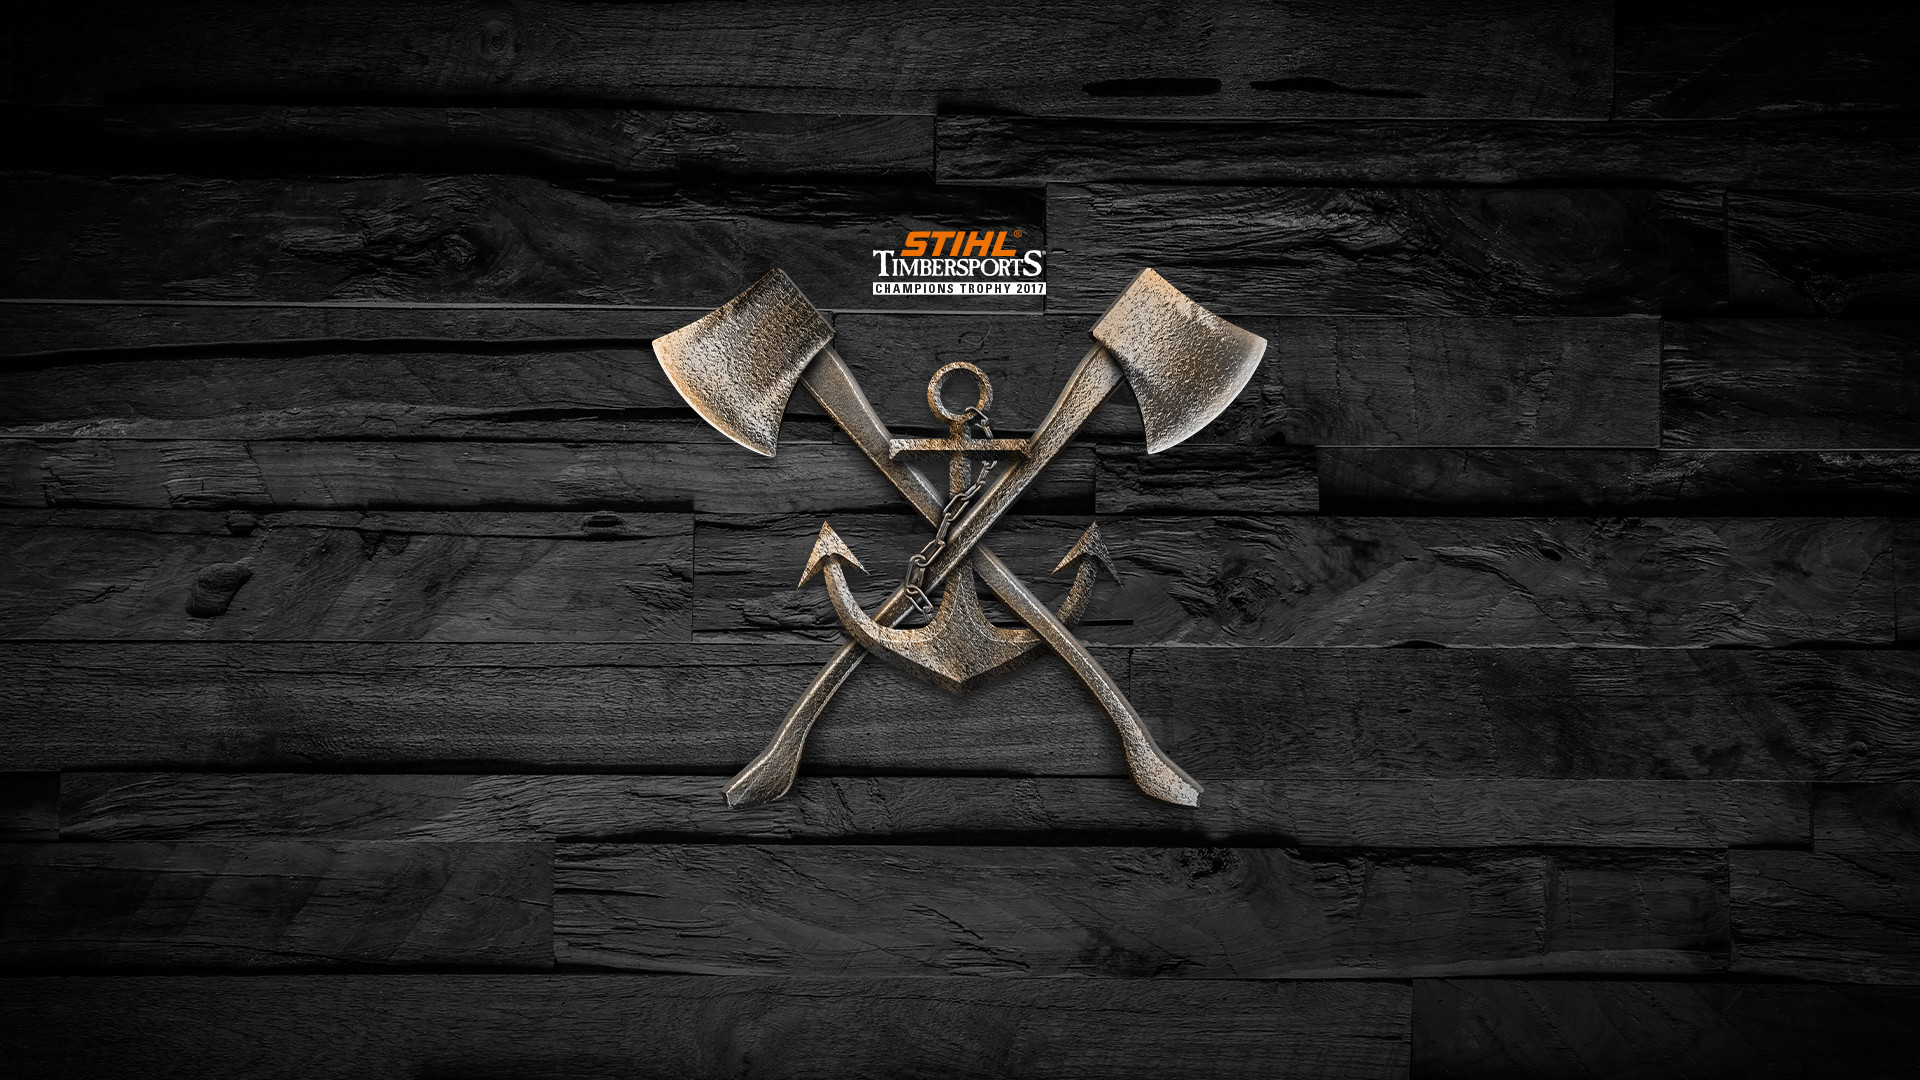 Stihl Wallpaper Backgrounds in HD 57 images 1920x1080